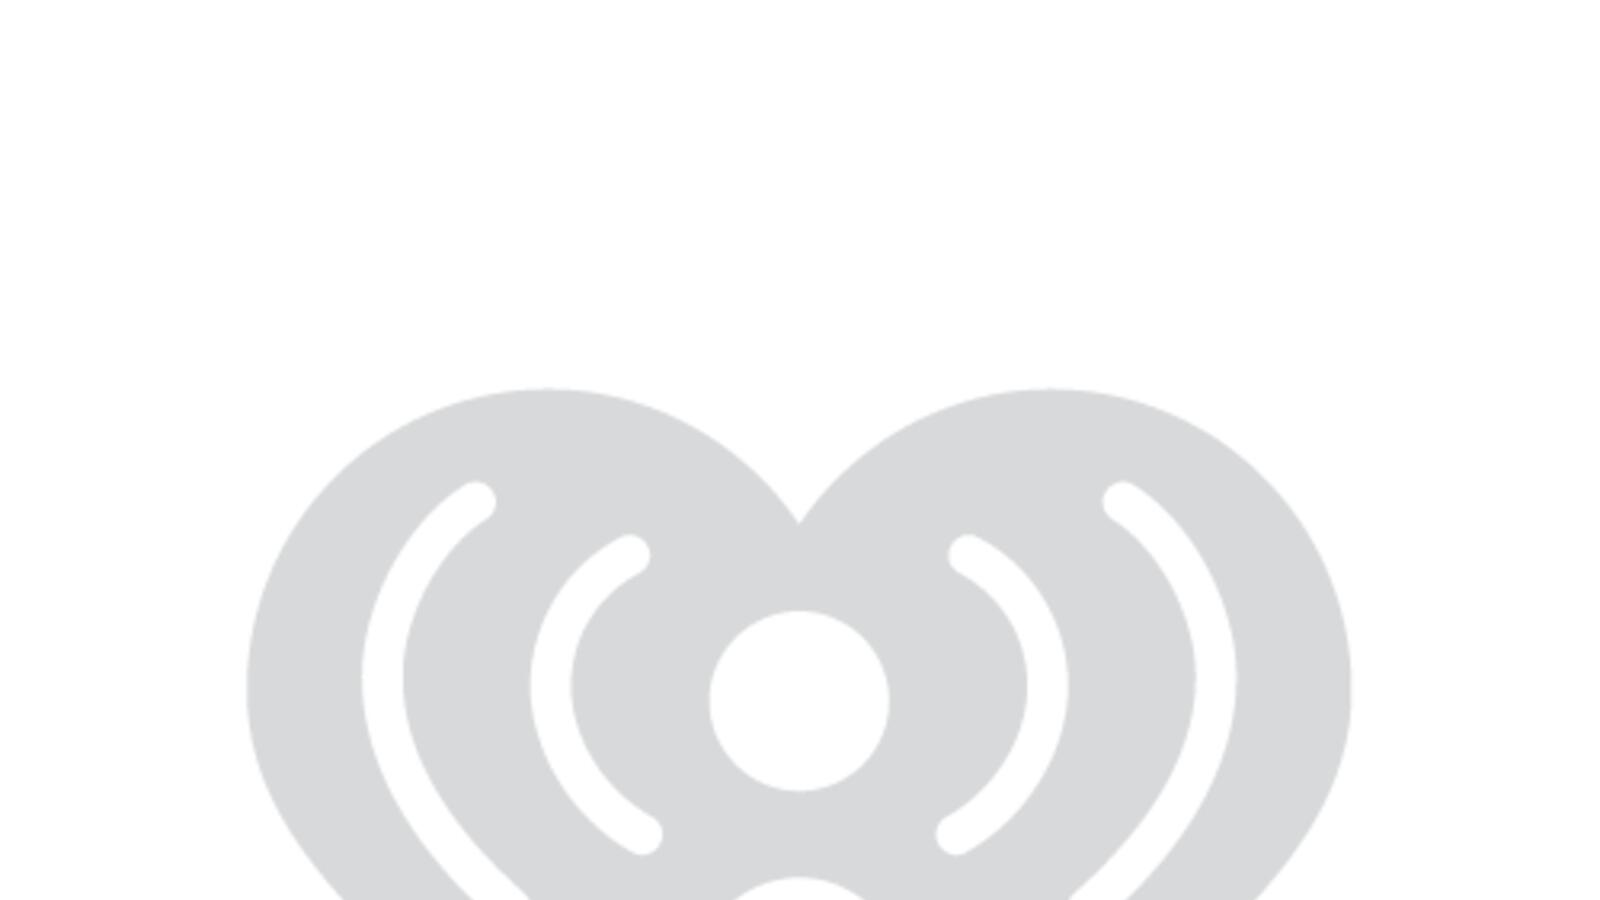 Brett Butler On Playing With Both The Dodgers-Giants & The Rivalry